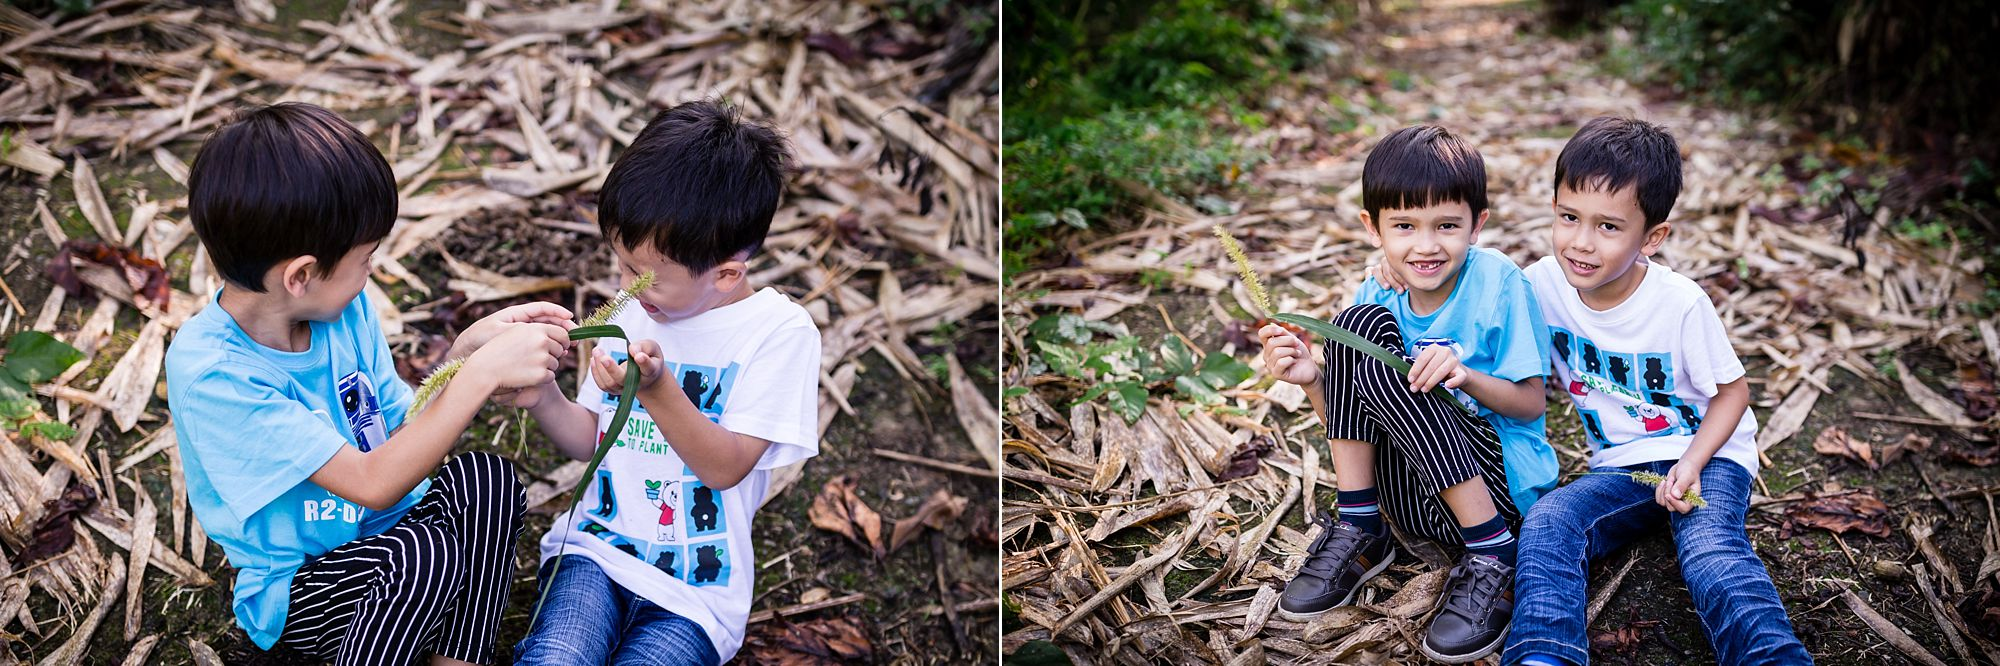 Taiwan_Family_Lifestyle_Photographer_Hunnicutt_Photography_0024